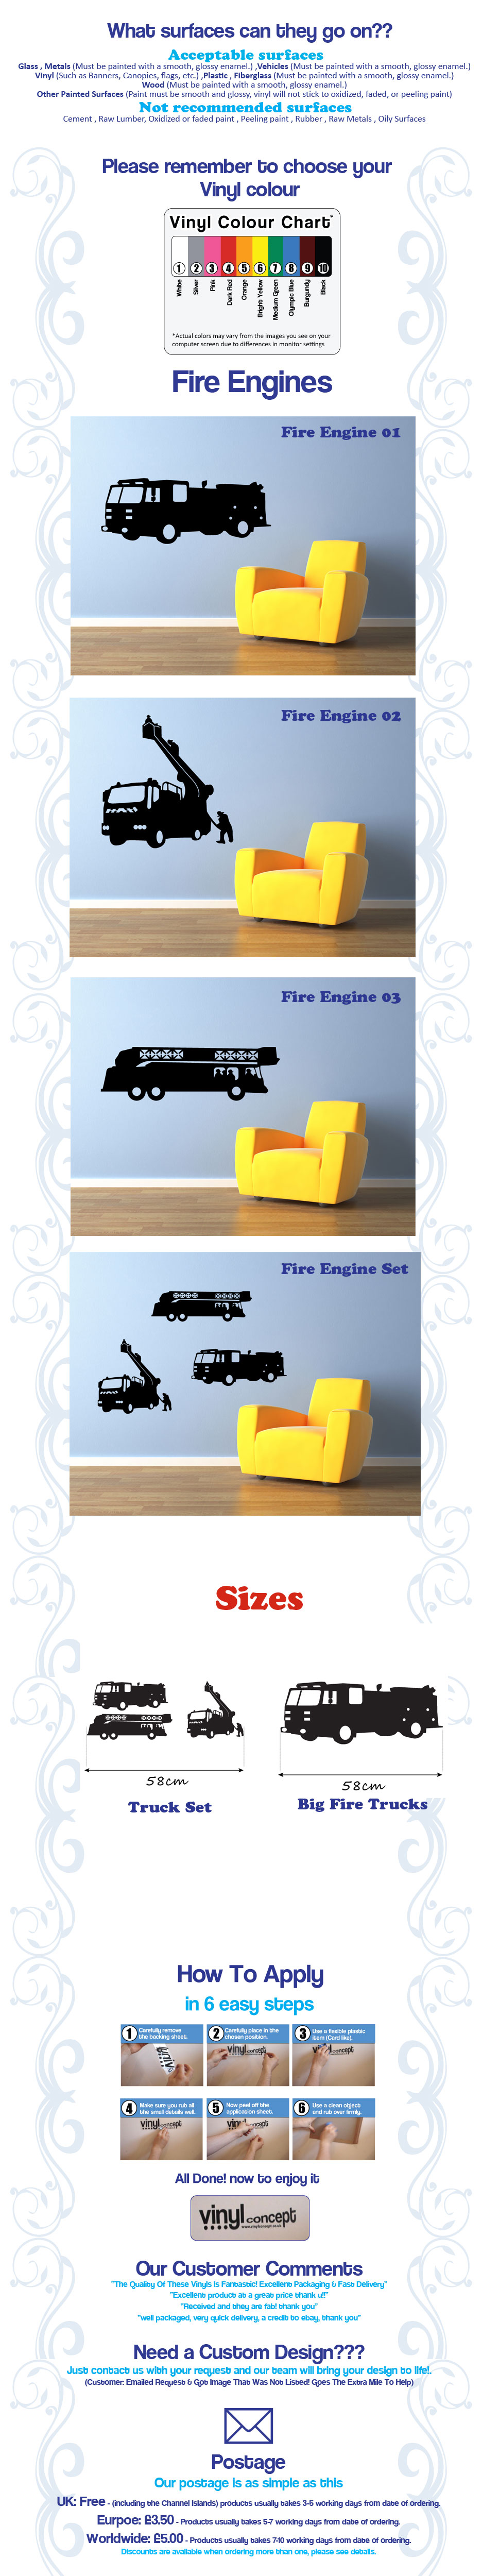 Wall-Stickers---Vinyl-Art-Decals---Vinyl-Concept!